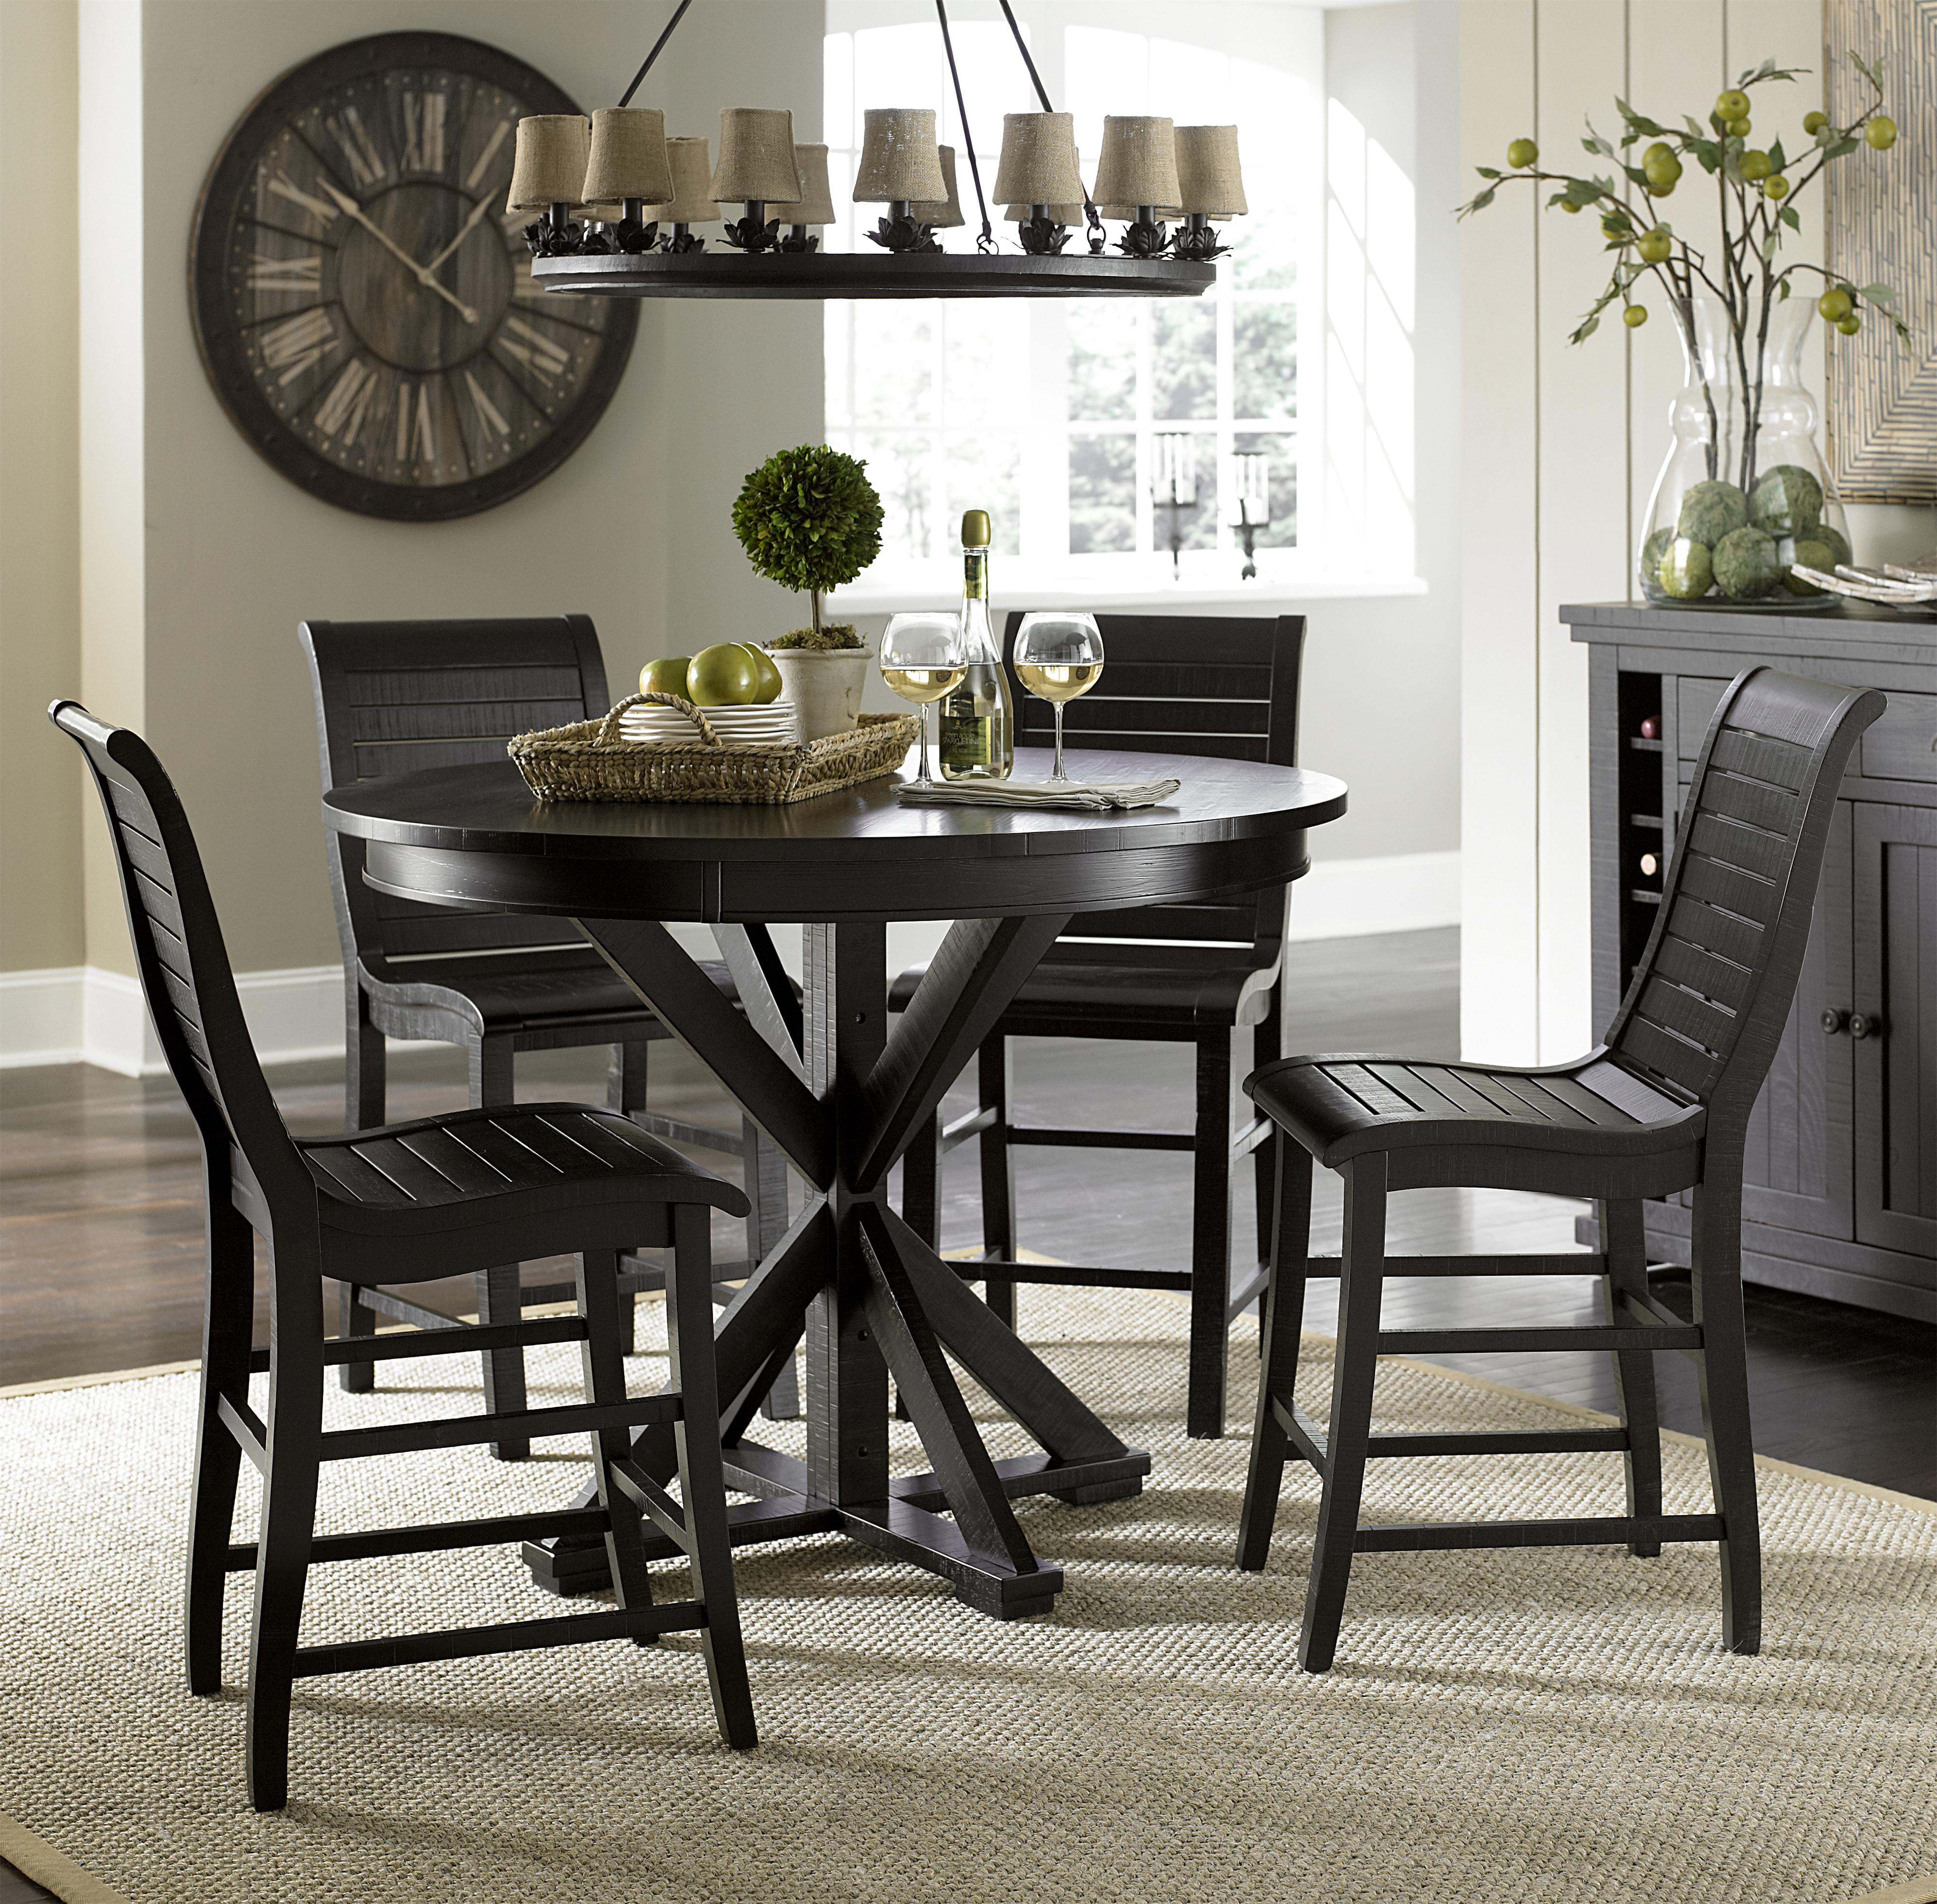 high table and chairs for kitchen animal print progressive furniture willow dining 5 piece round counter height set